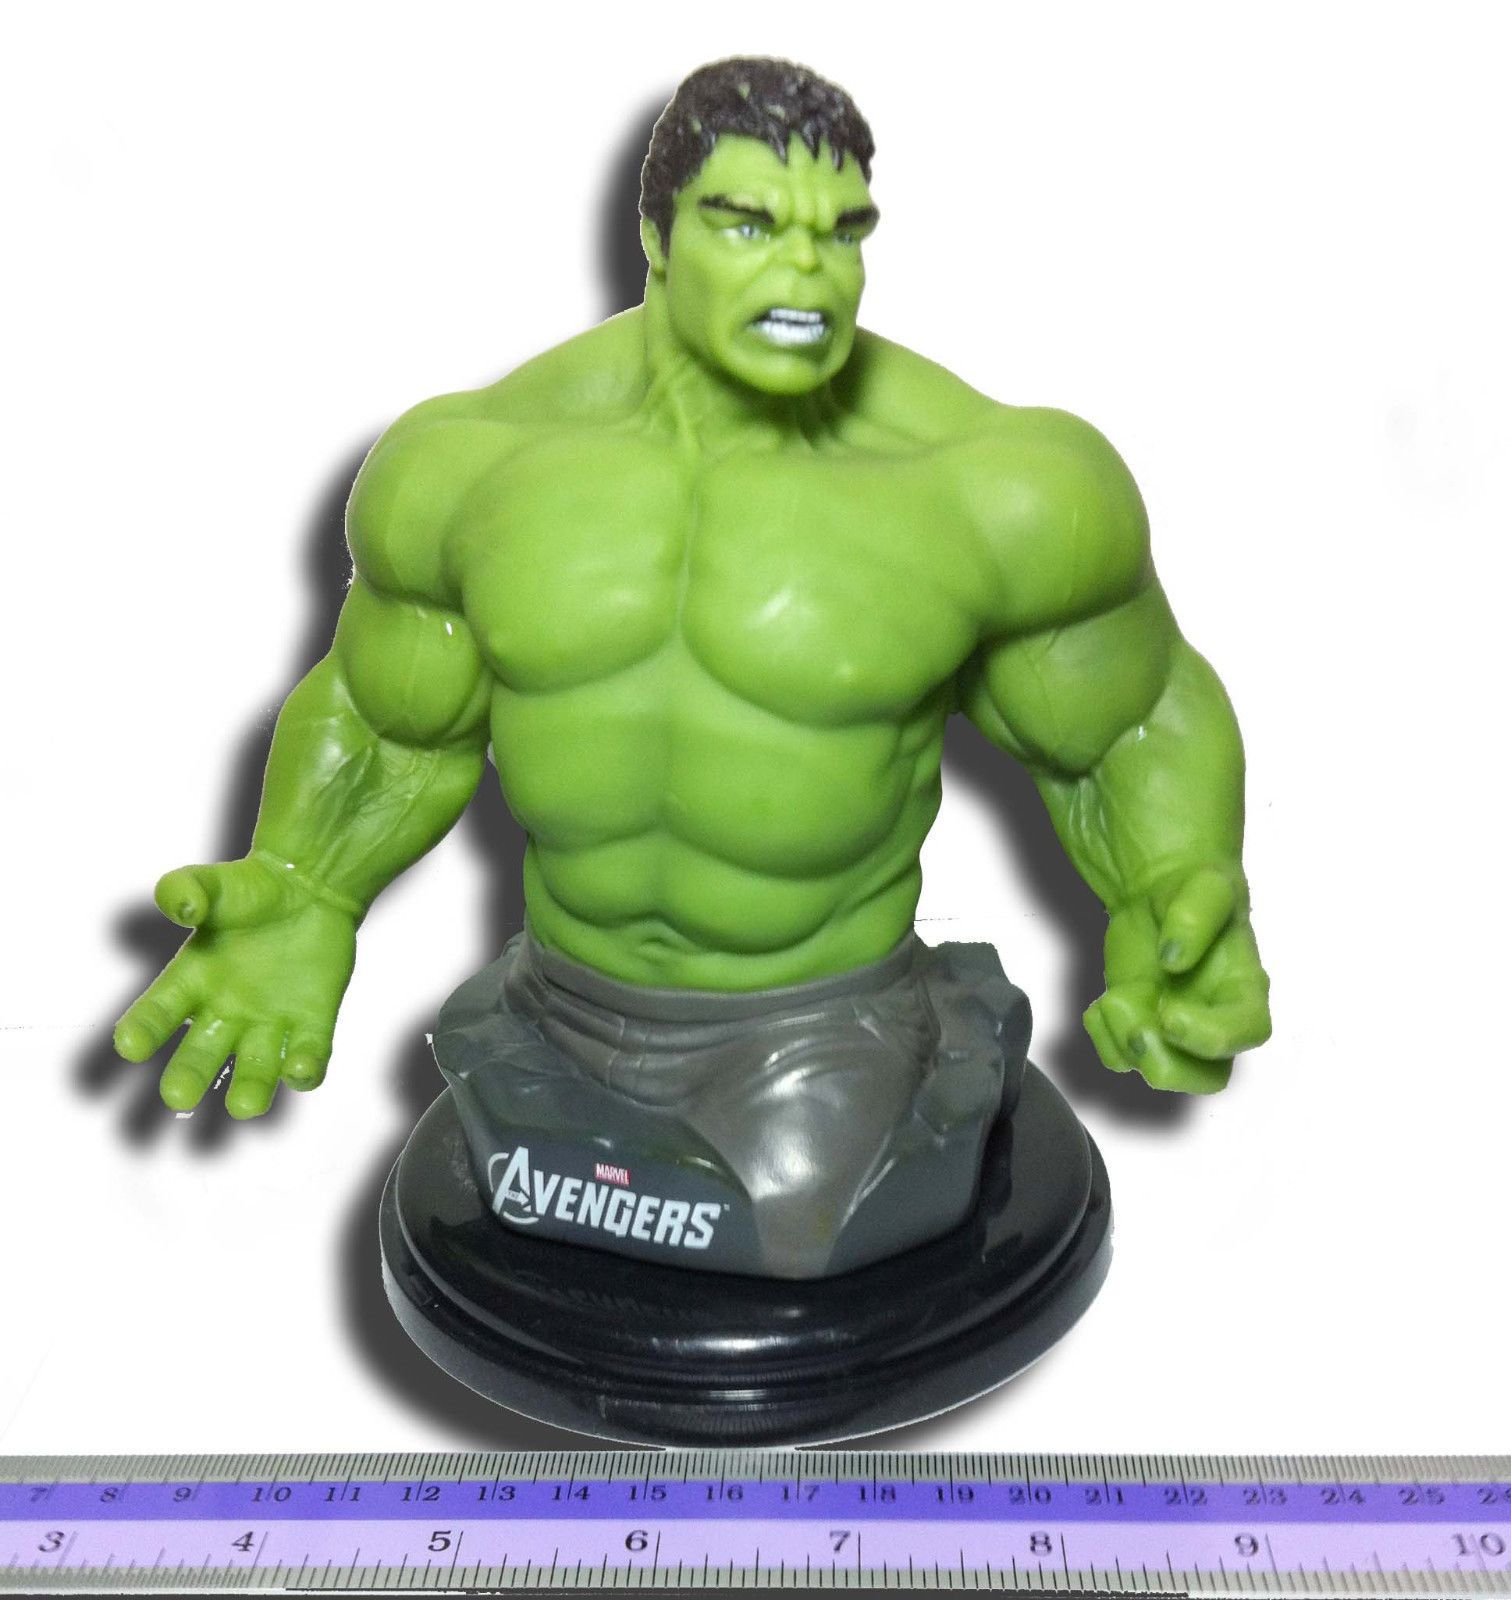 THE INCREDIBLE HULK 2008 TOPPER CUP FIGURE FROM THEATER ACTION ENTERTAINMENT